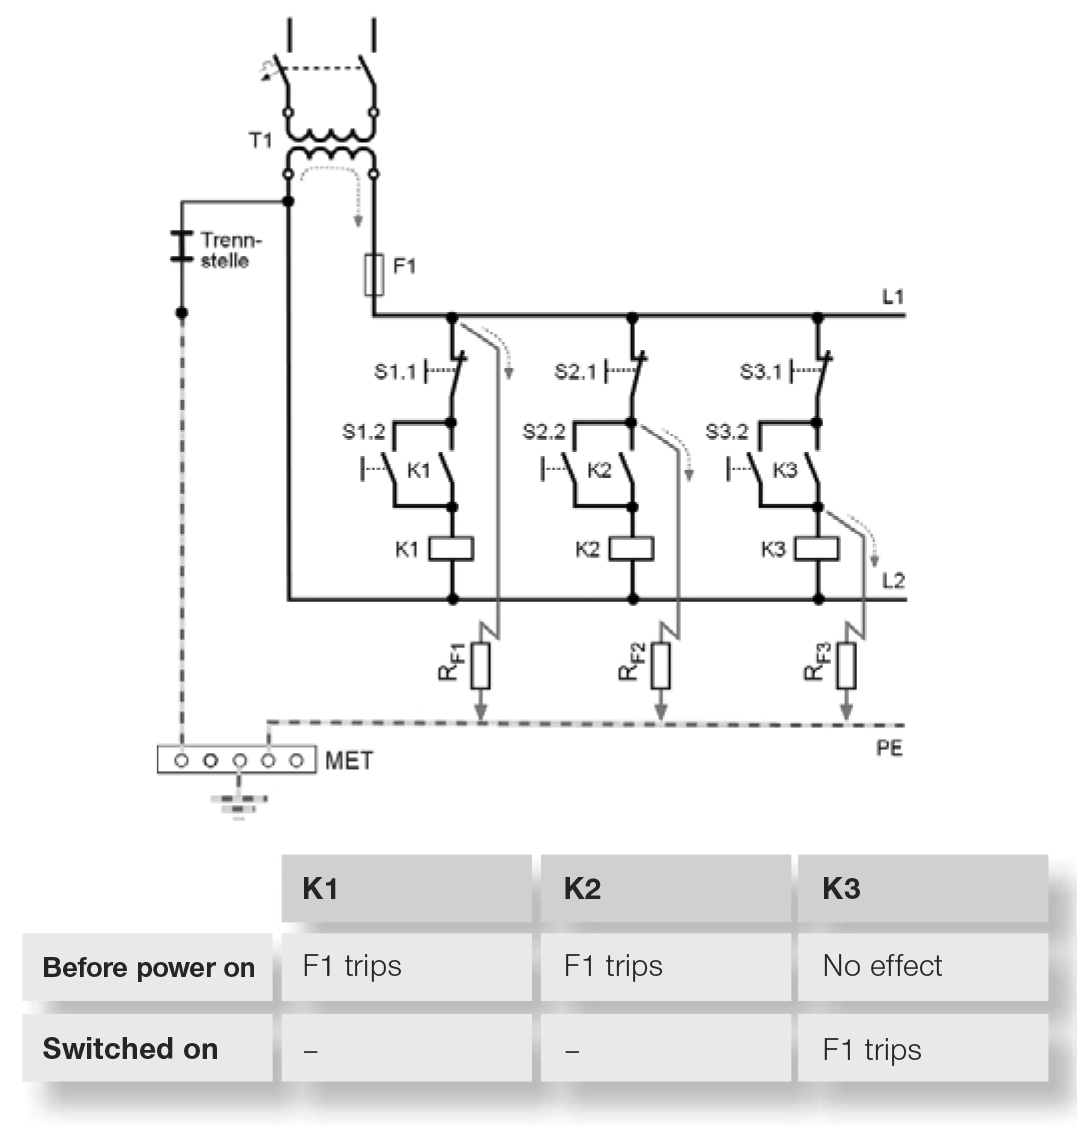 First fault in an earthed control circuit